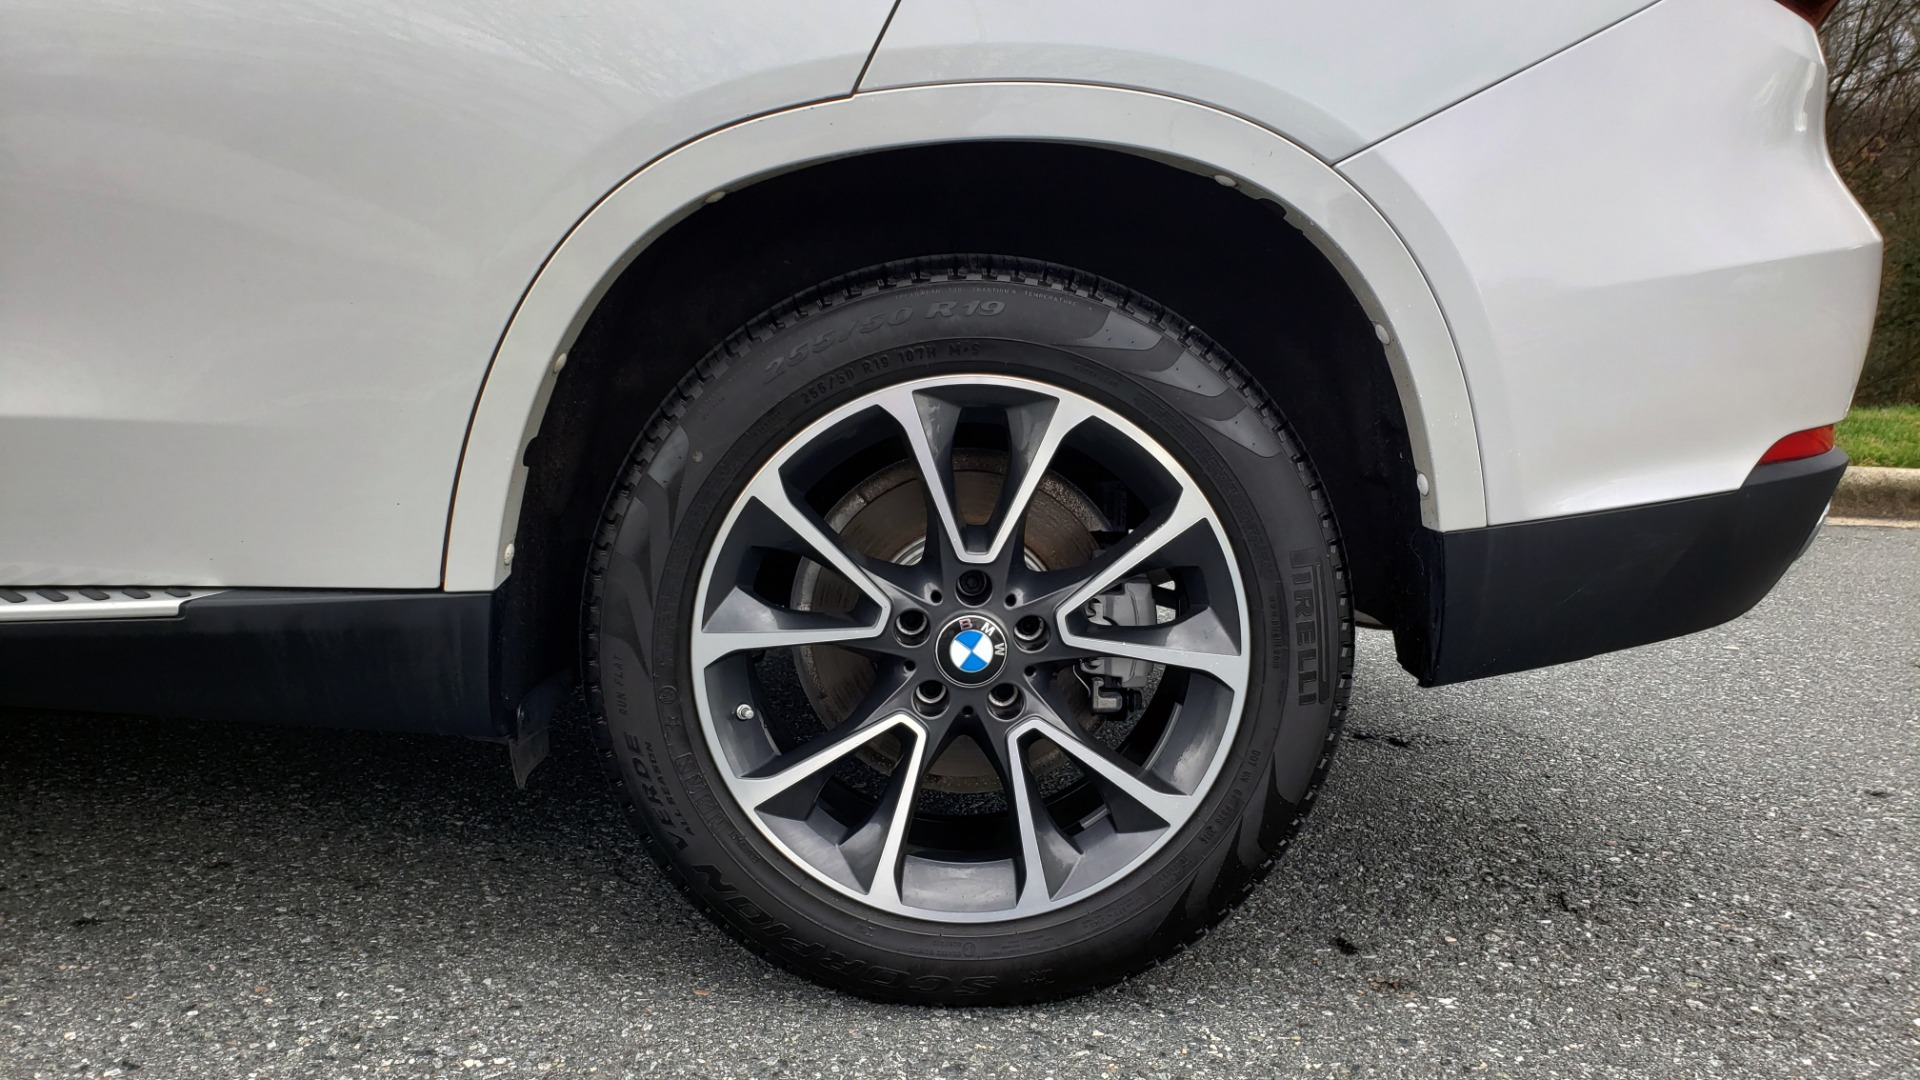 Used 2017 BMW X5 XDRIVE35I / NAV / HUD / DRVR ASST / SUNROOF / REARVIEW for sale Sold at Formula Imports in Charlotte NC 28227 81